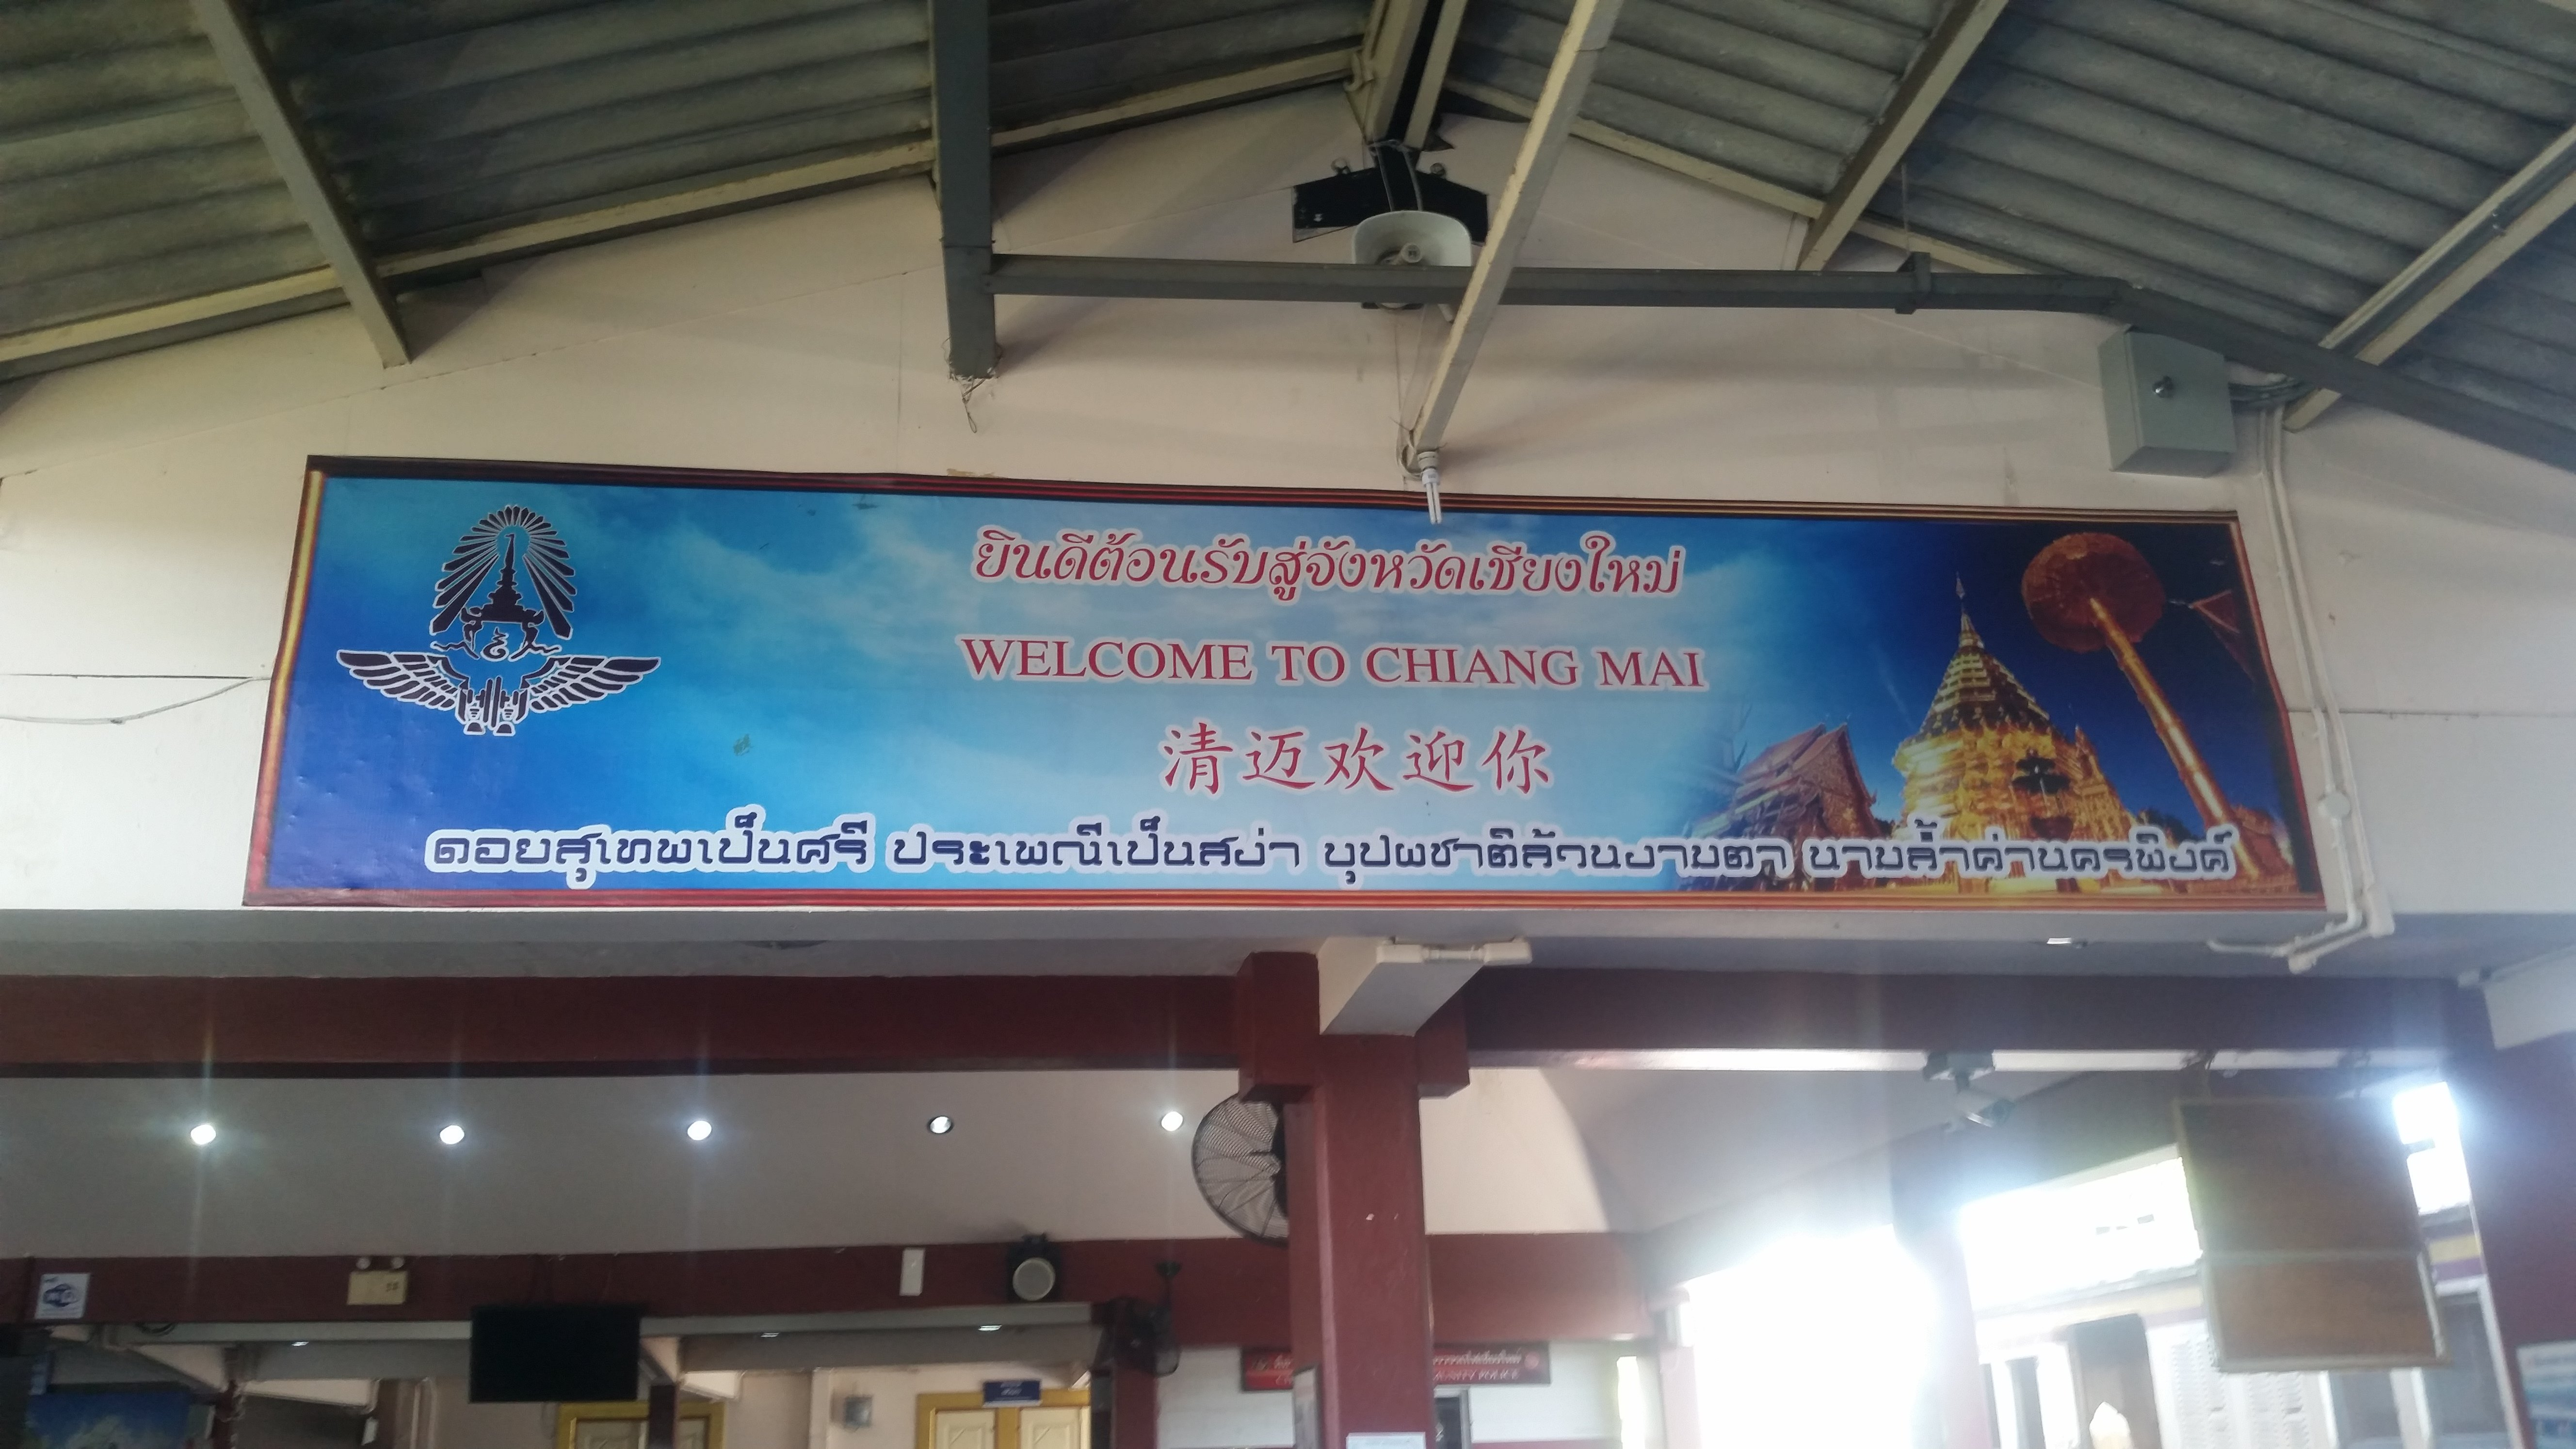 Welcome to Chiang Mai!